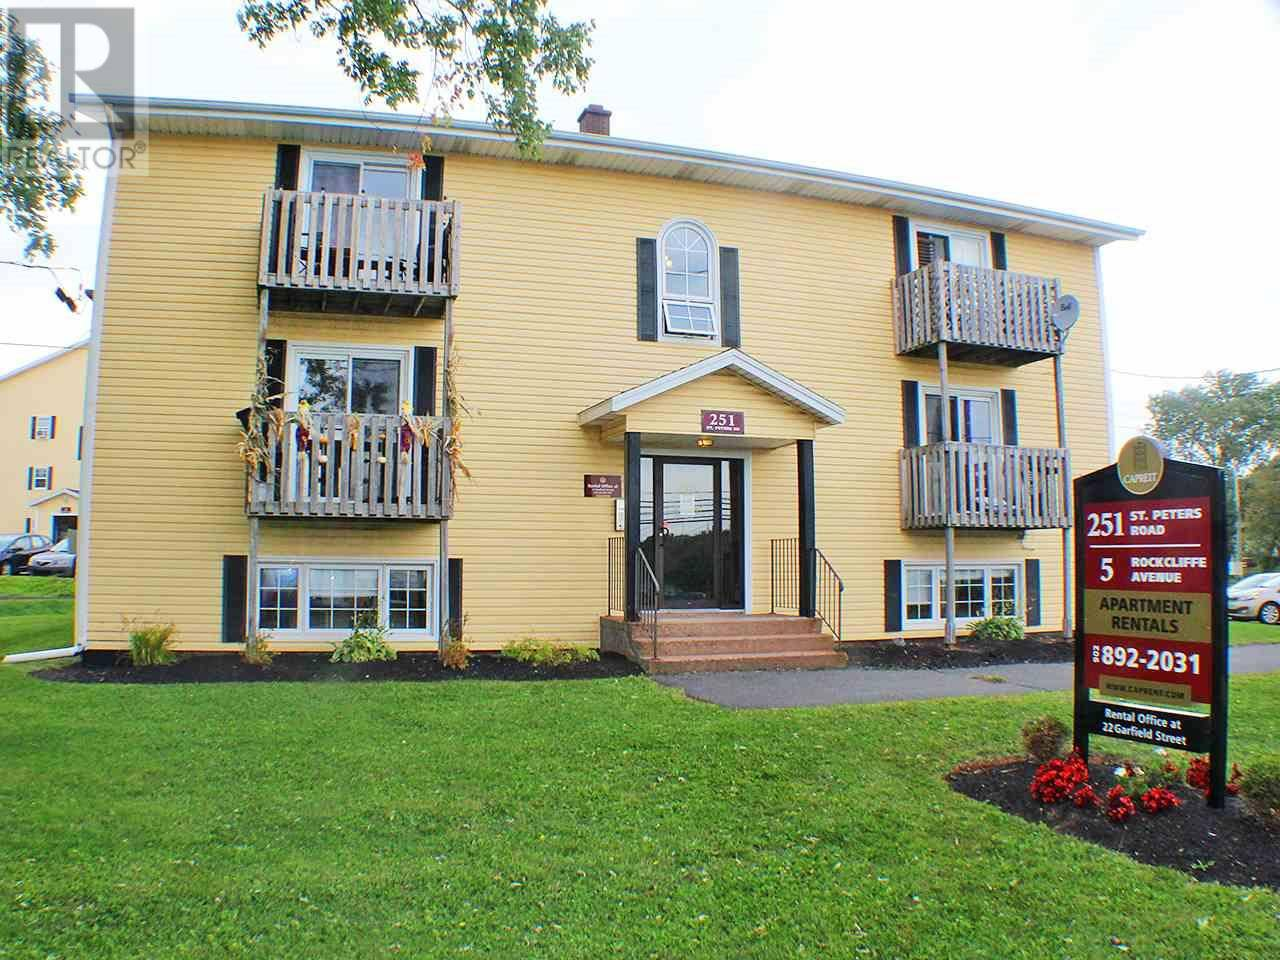 Condo for sale at 251 St. Peters Rd Charlottetown Prince Edward Island - MLS: 201922797